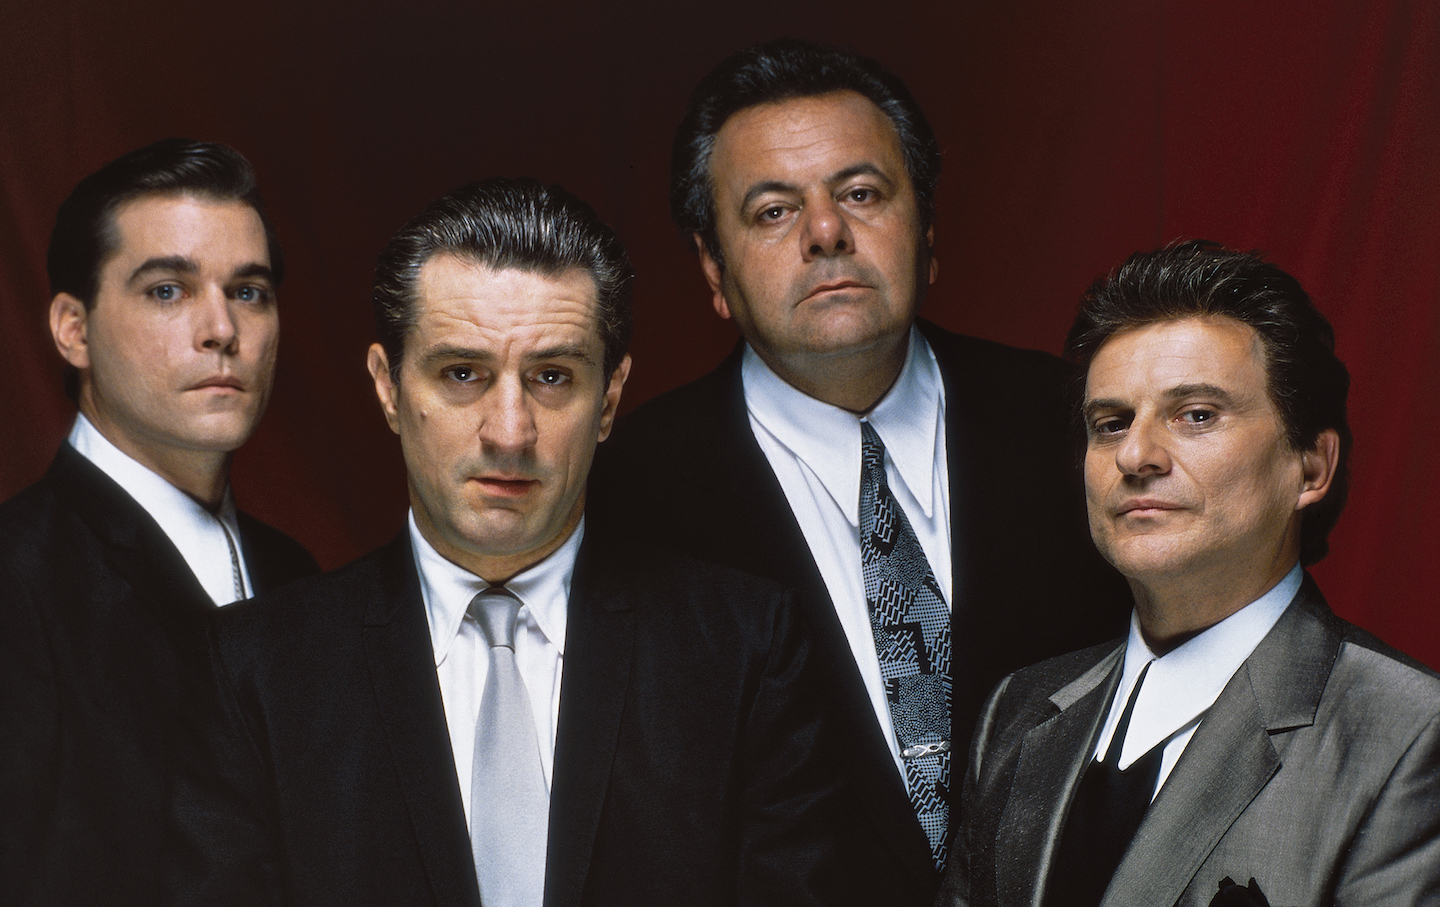 On the set of Goodfellas